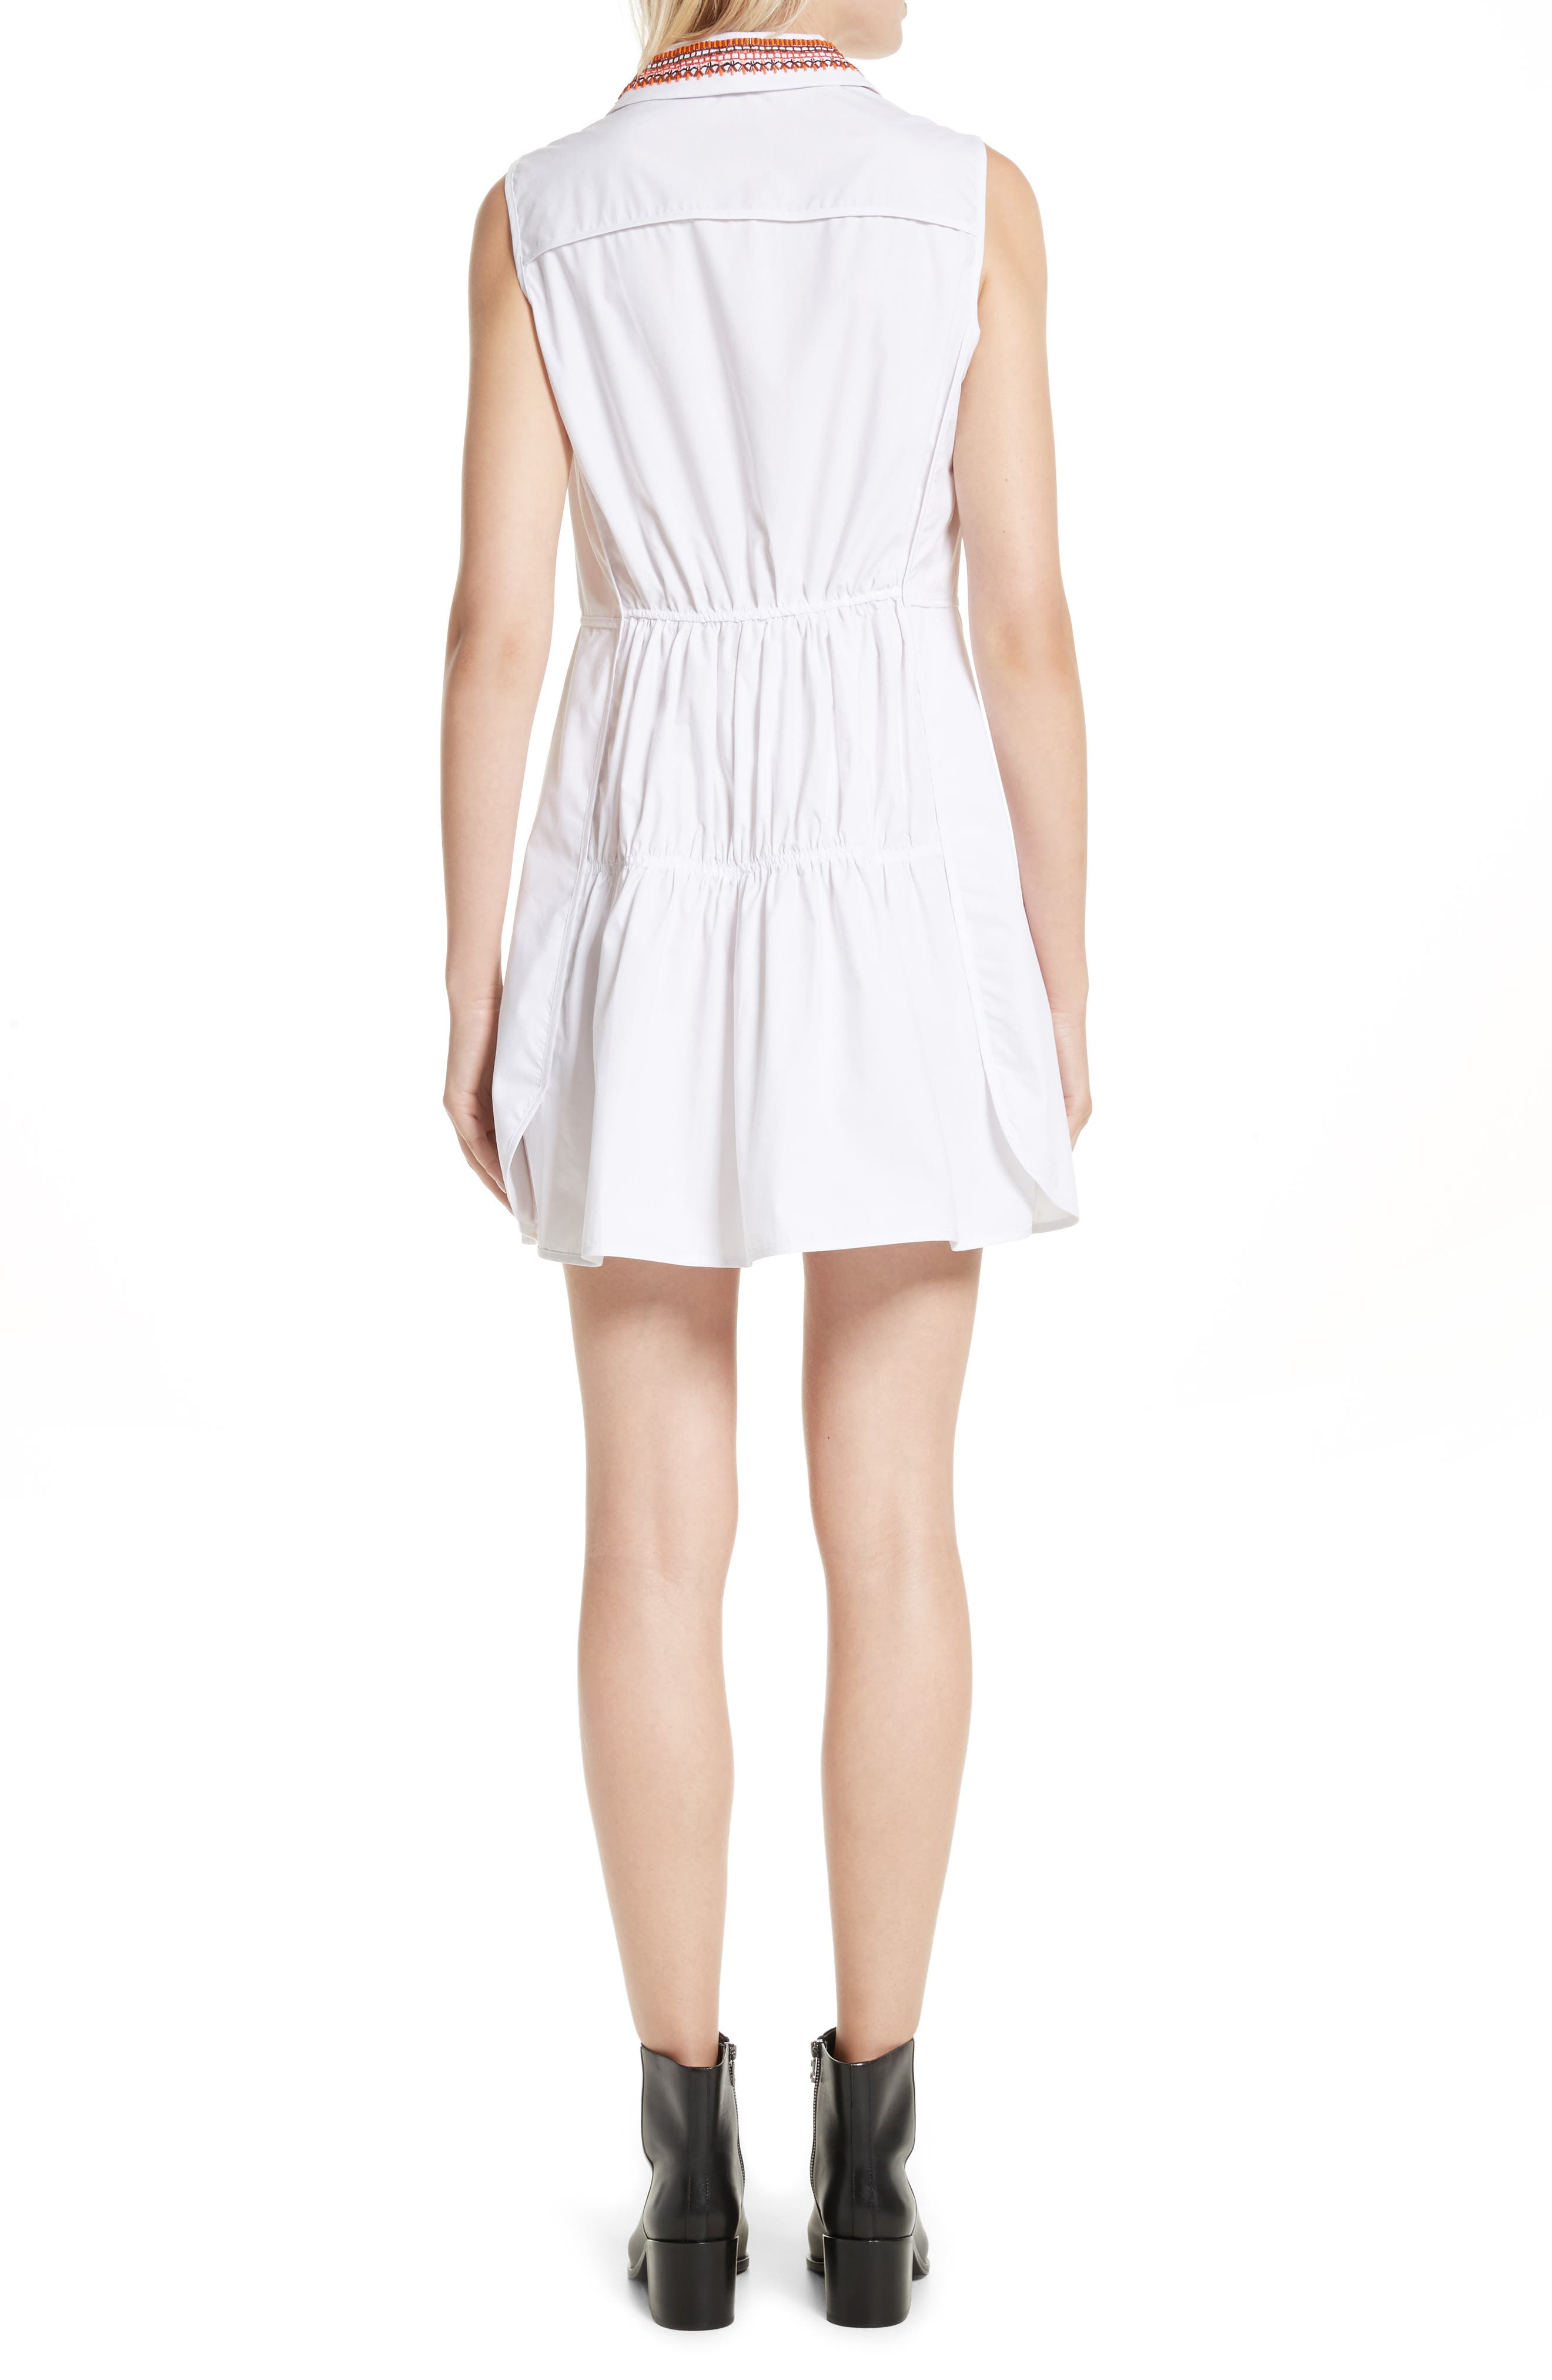 Transformer Poplin Dress with Detachable Embroidered Collar,                             Alternate thumbnail 2, color,                             100